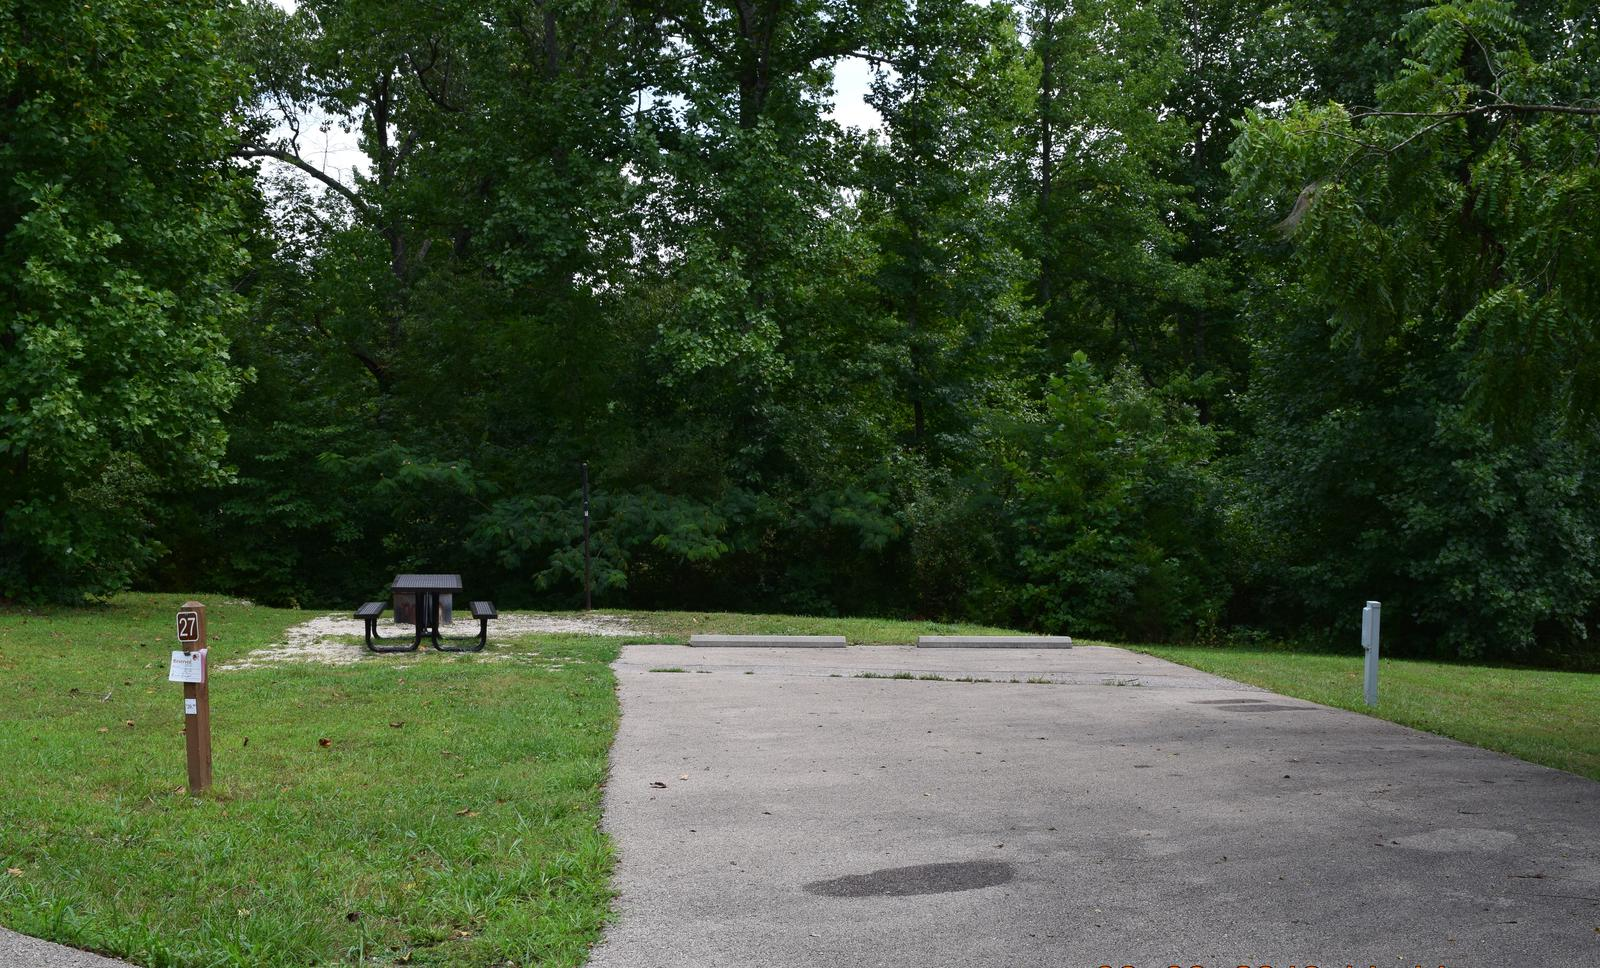 Campsite 27 showing parking spur, picnic table, lantern post, electric hookup and fire ring.Campsite 27